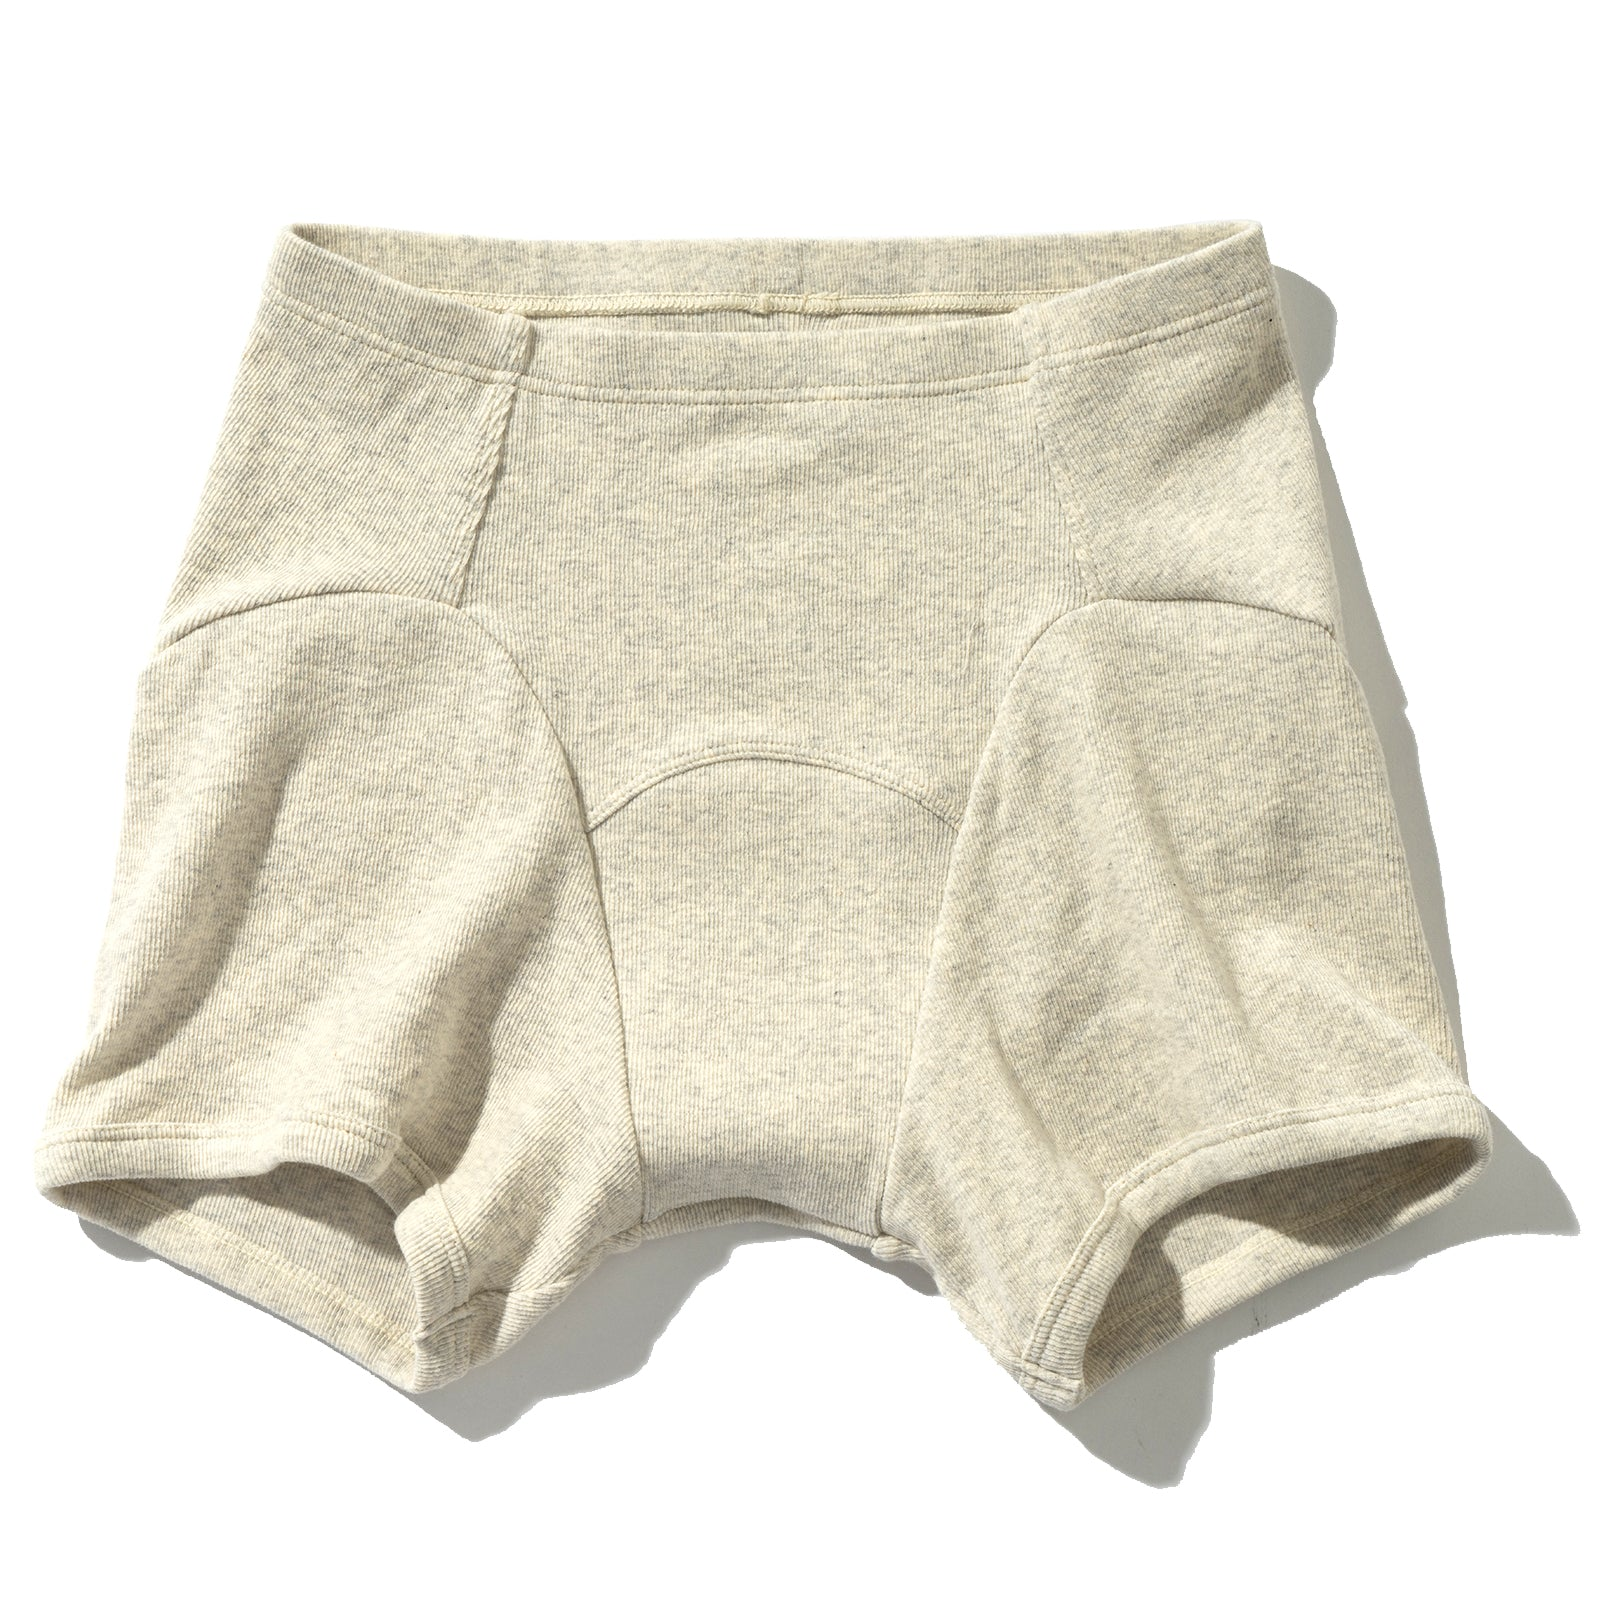 REAL McCOY'S ATHLETIC UNDERWEAR LONG